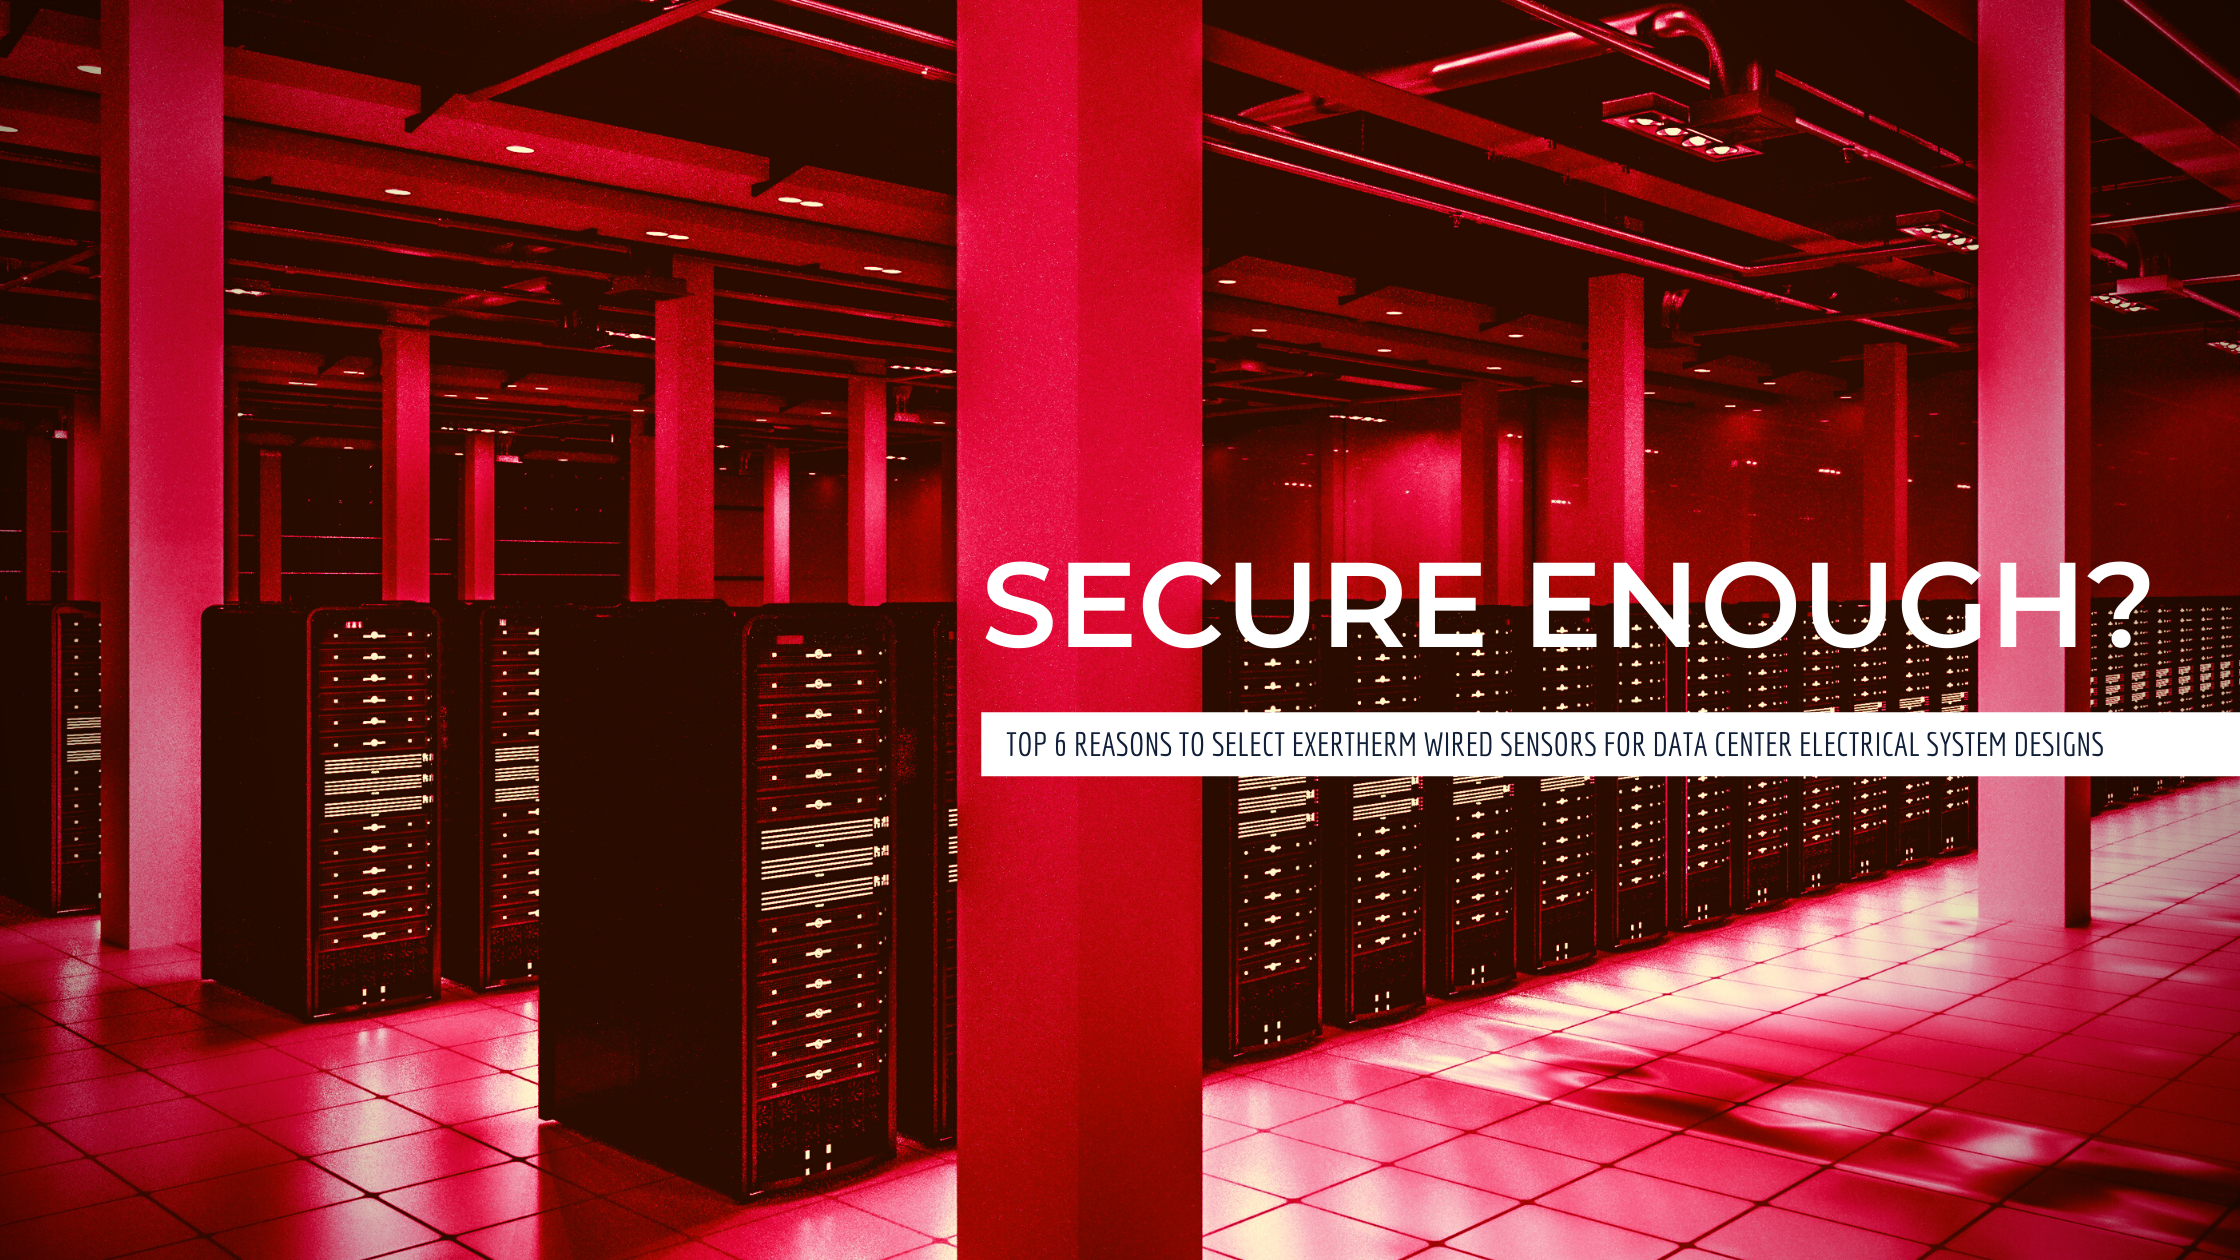 Secure Data Center Electrical Design with Exertherm Wired Sensors